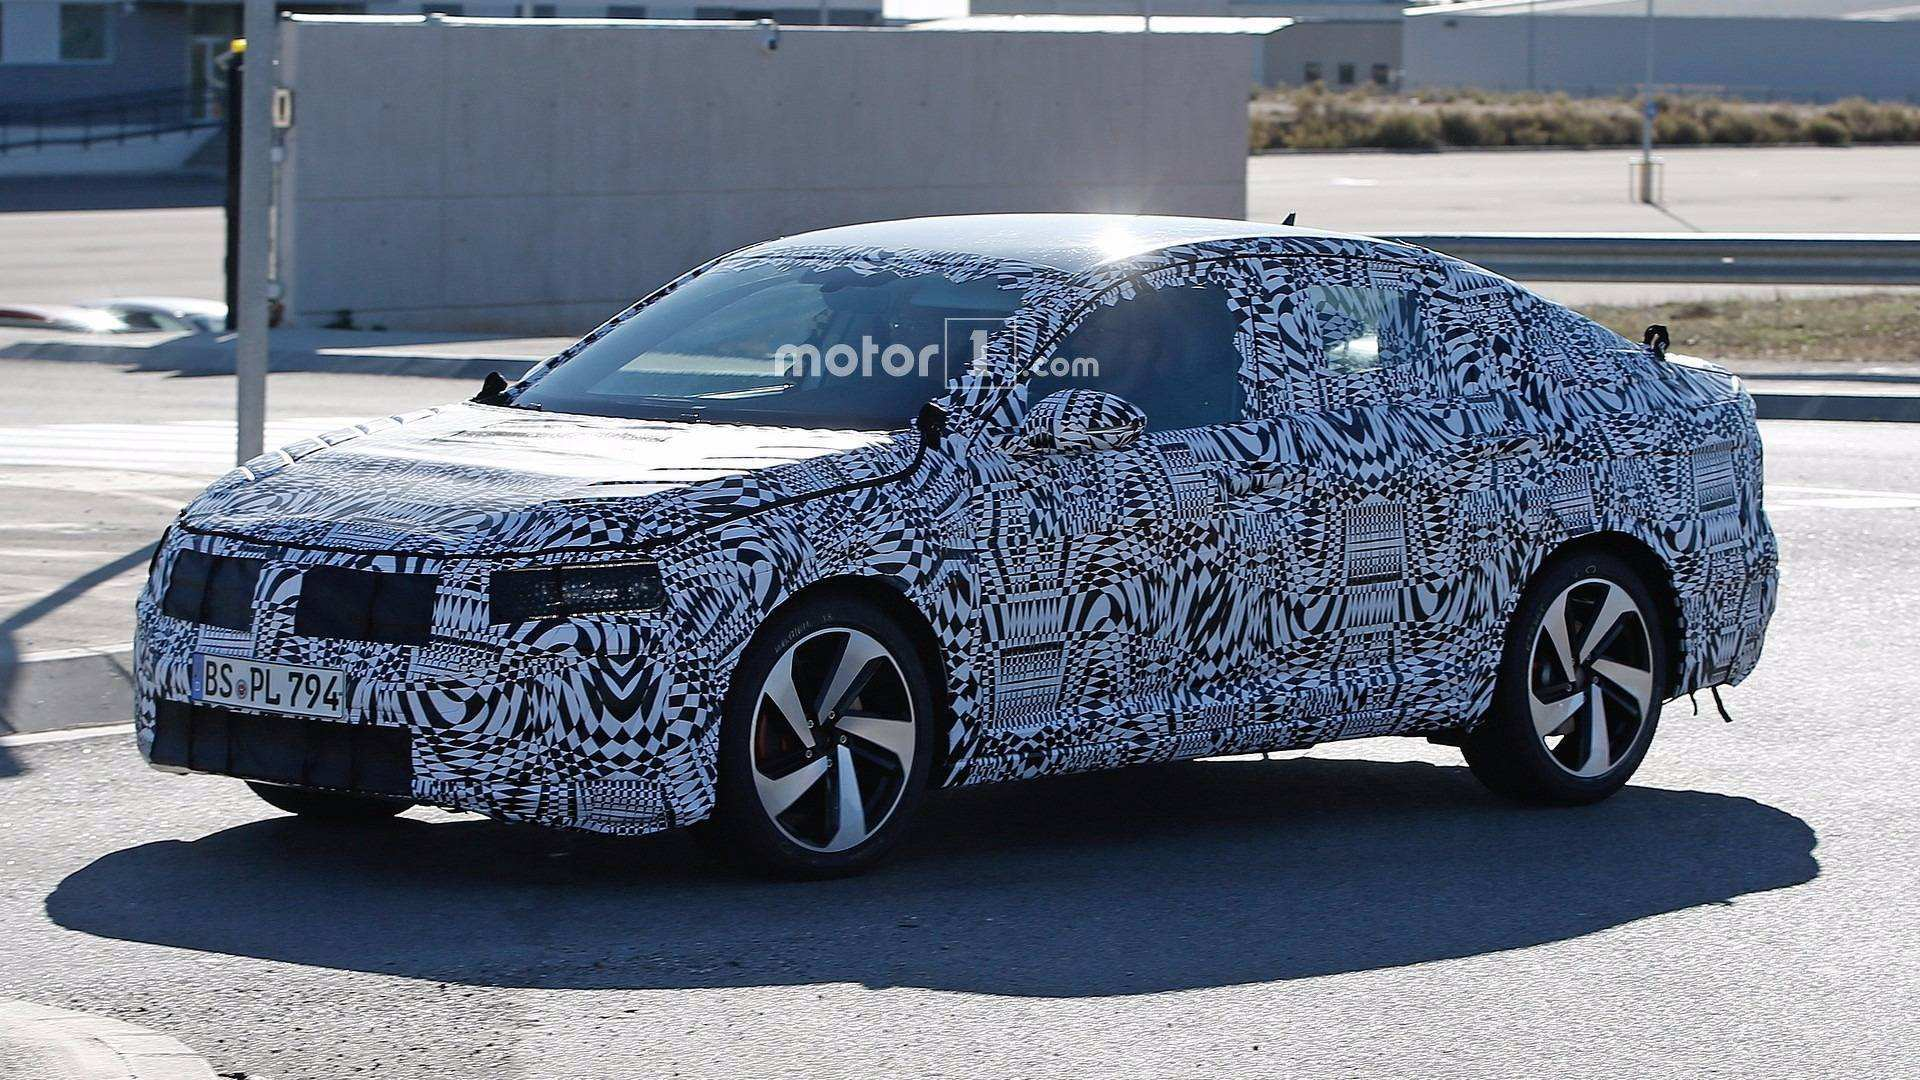 31 All New 2019 Jetta Spy Shots Photos by 2019 Jetta Spy Shots